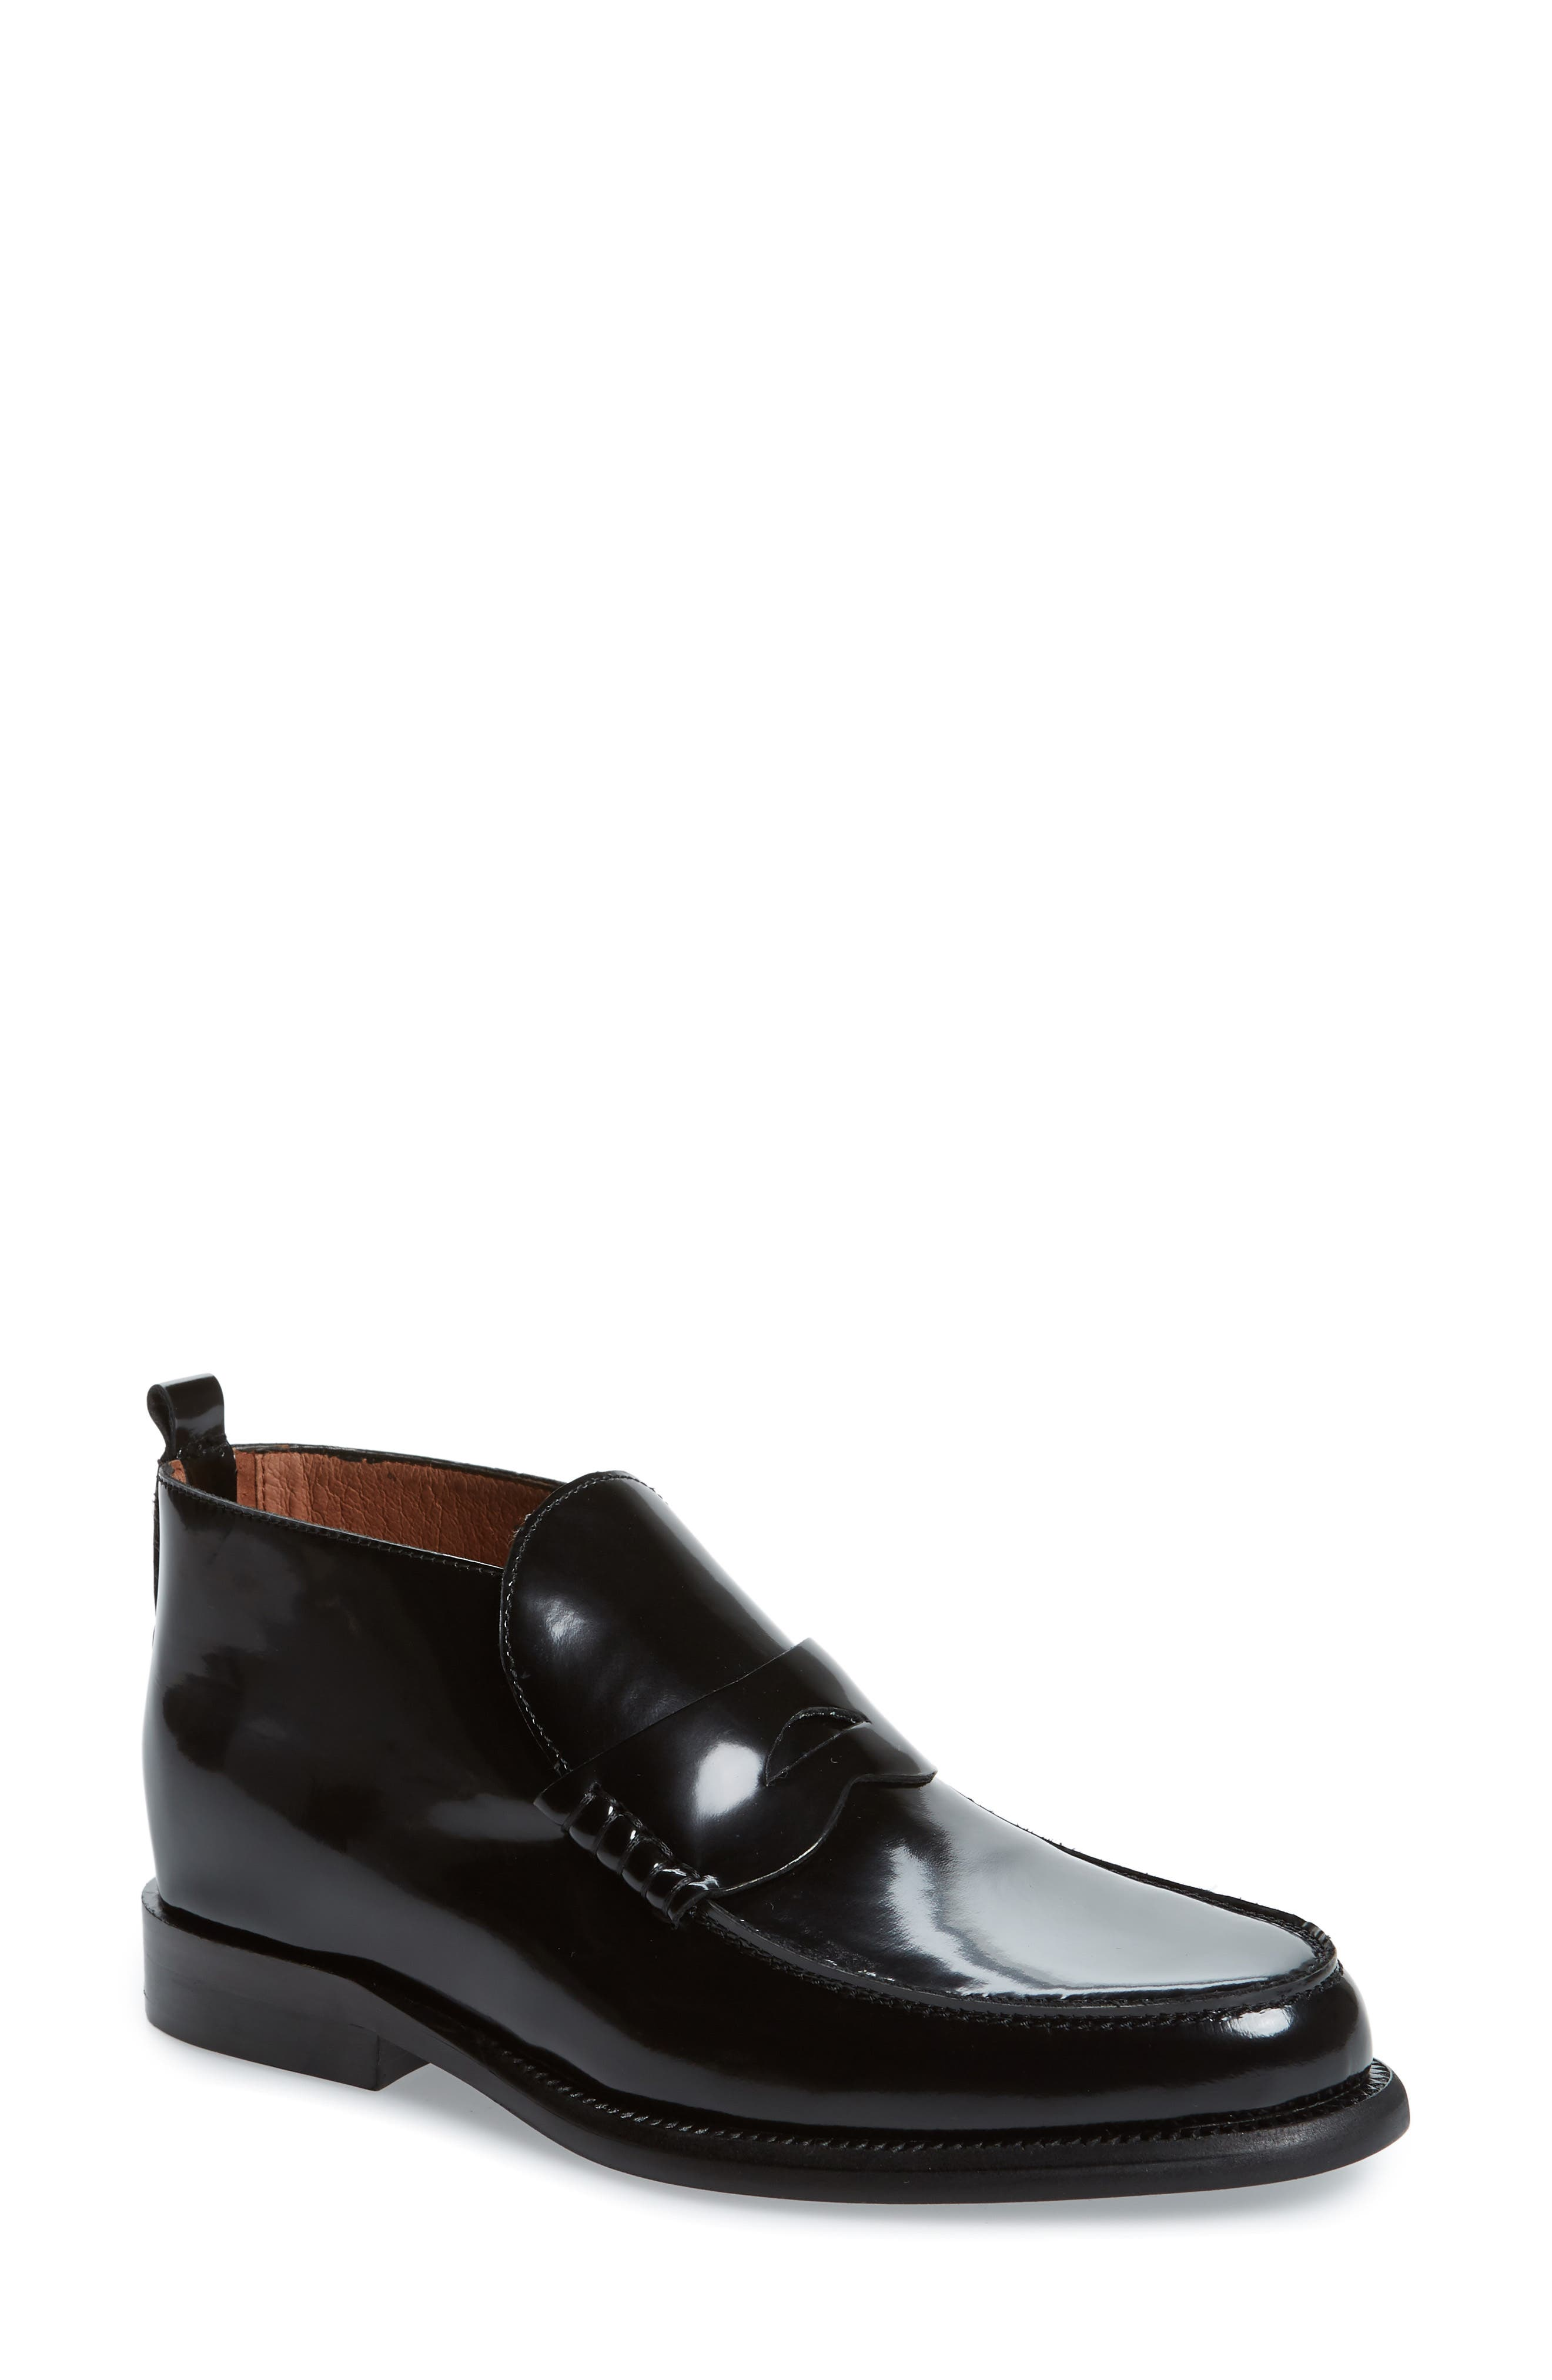 JEFFREY CAMPBELL Marquis Loafer, Main, color, BLACK LEATHER